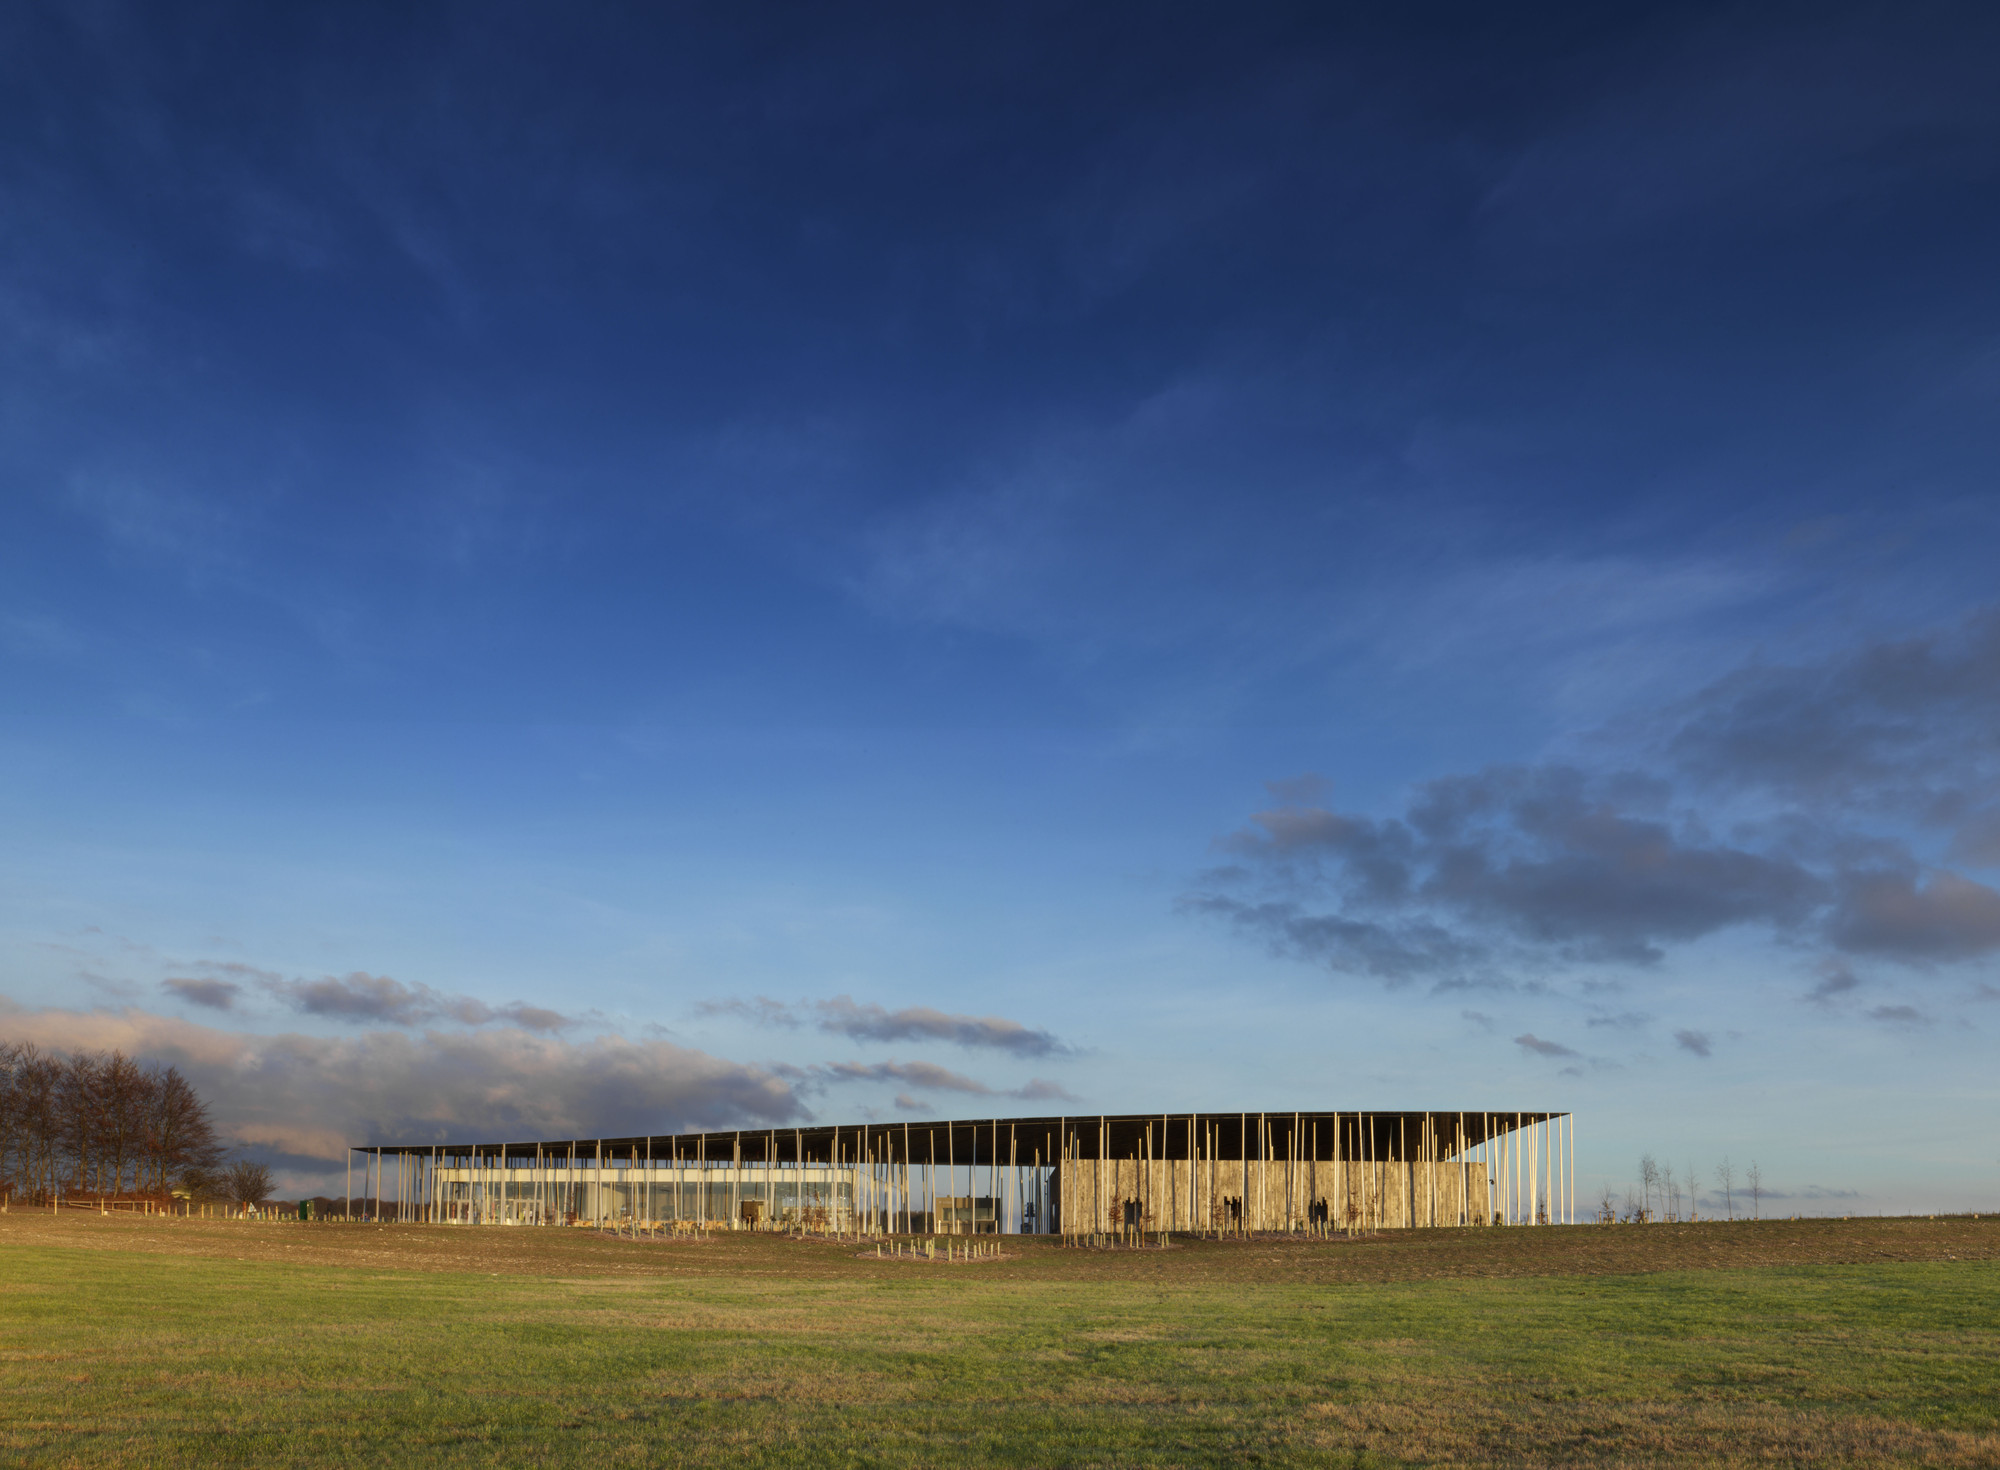 Australian Institute of Architects Awards Best Overseas Projects by Australian Architects, Stonehenge Exhibition + Visitor Centre / Denton Corker Marshall. Image © James Davies